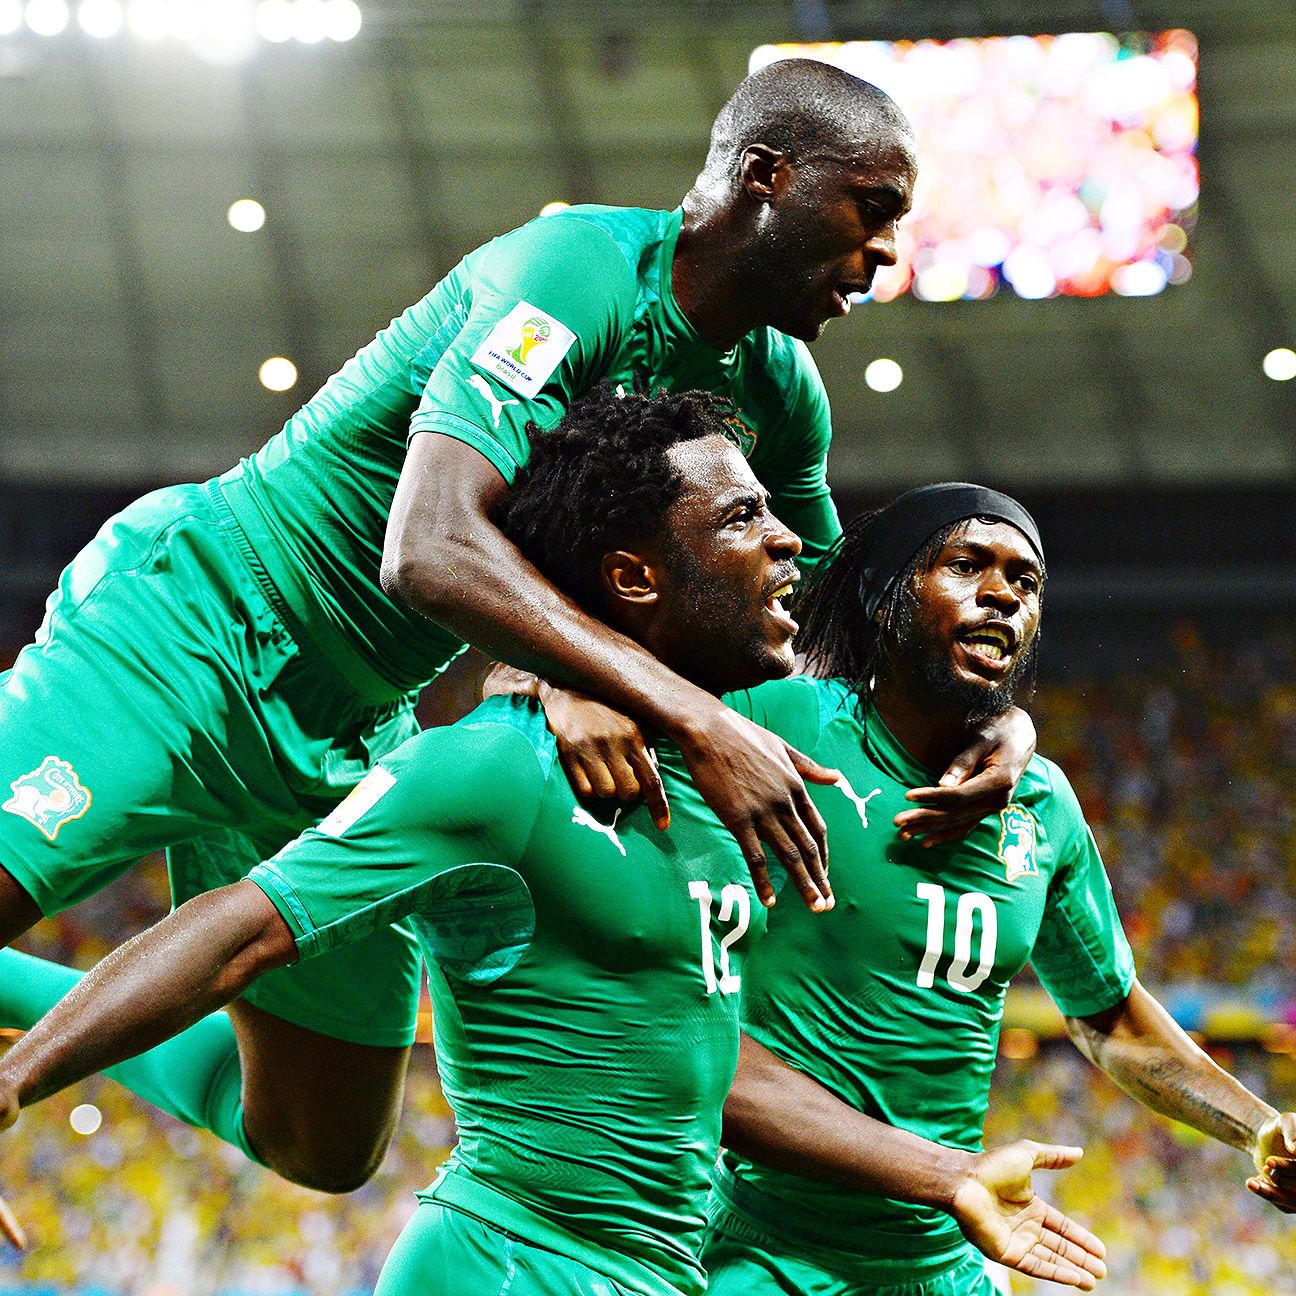 Gervinho, Yaya Toure & Wilfried Bony celebrate for the Ivory Coast